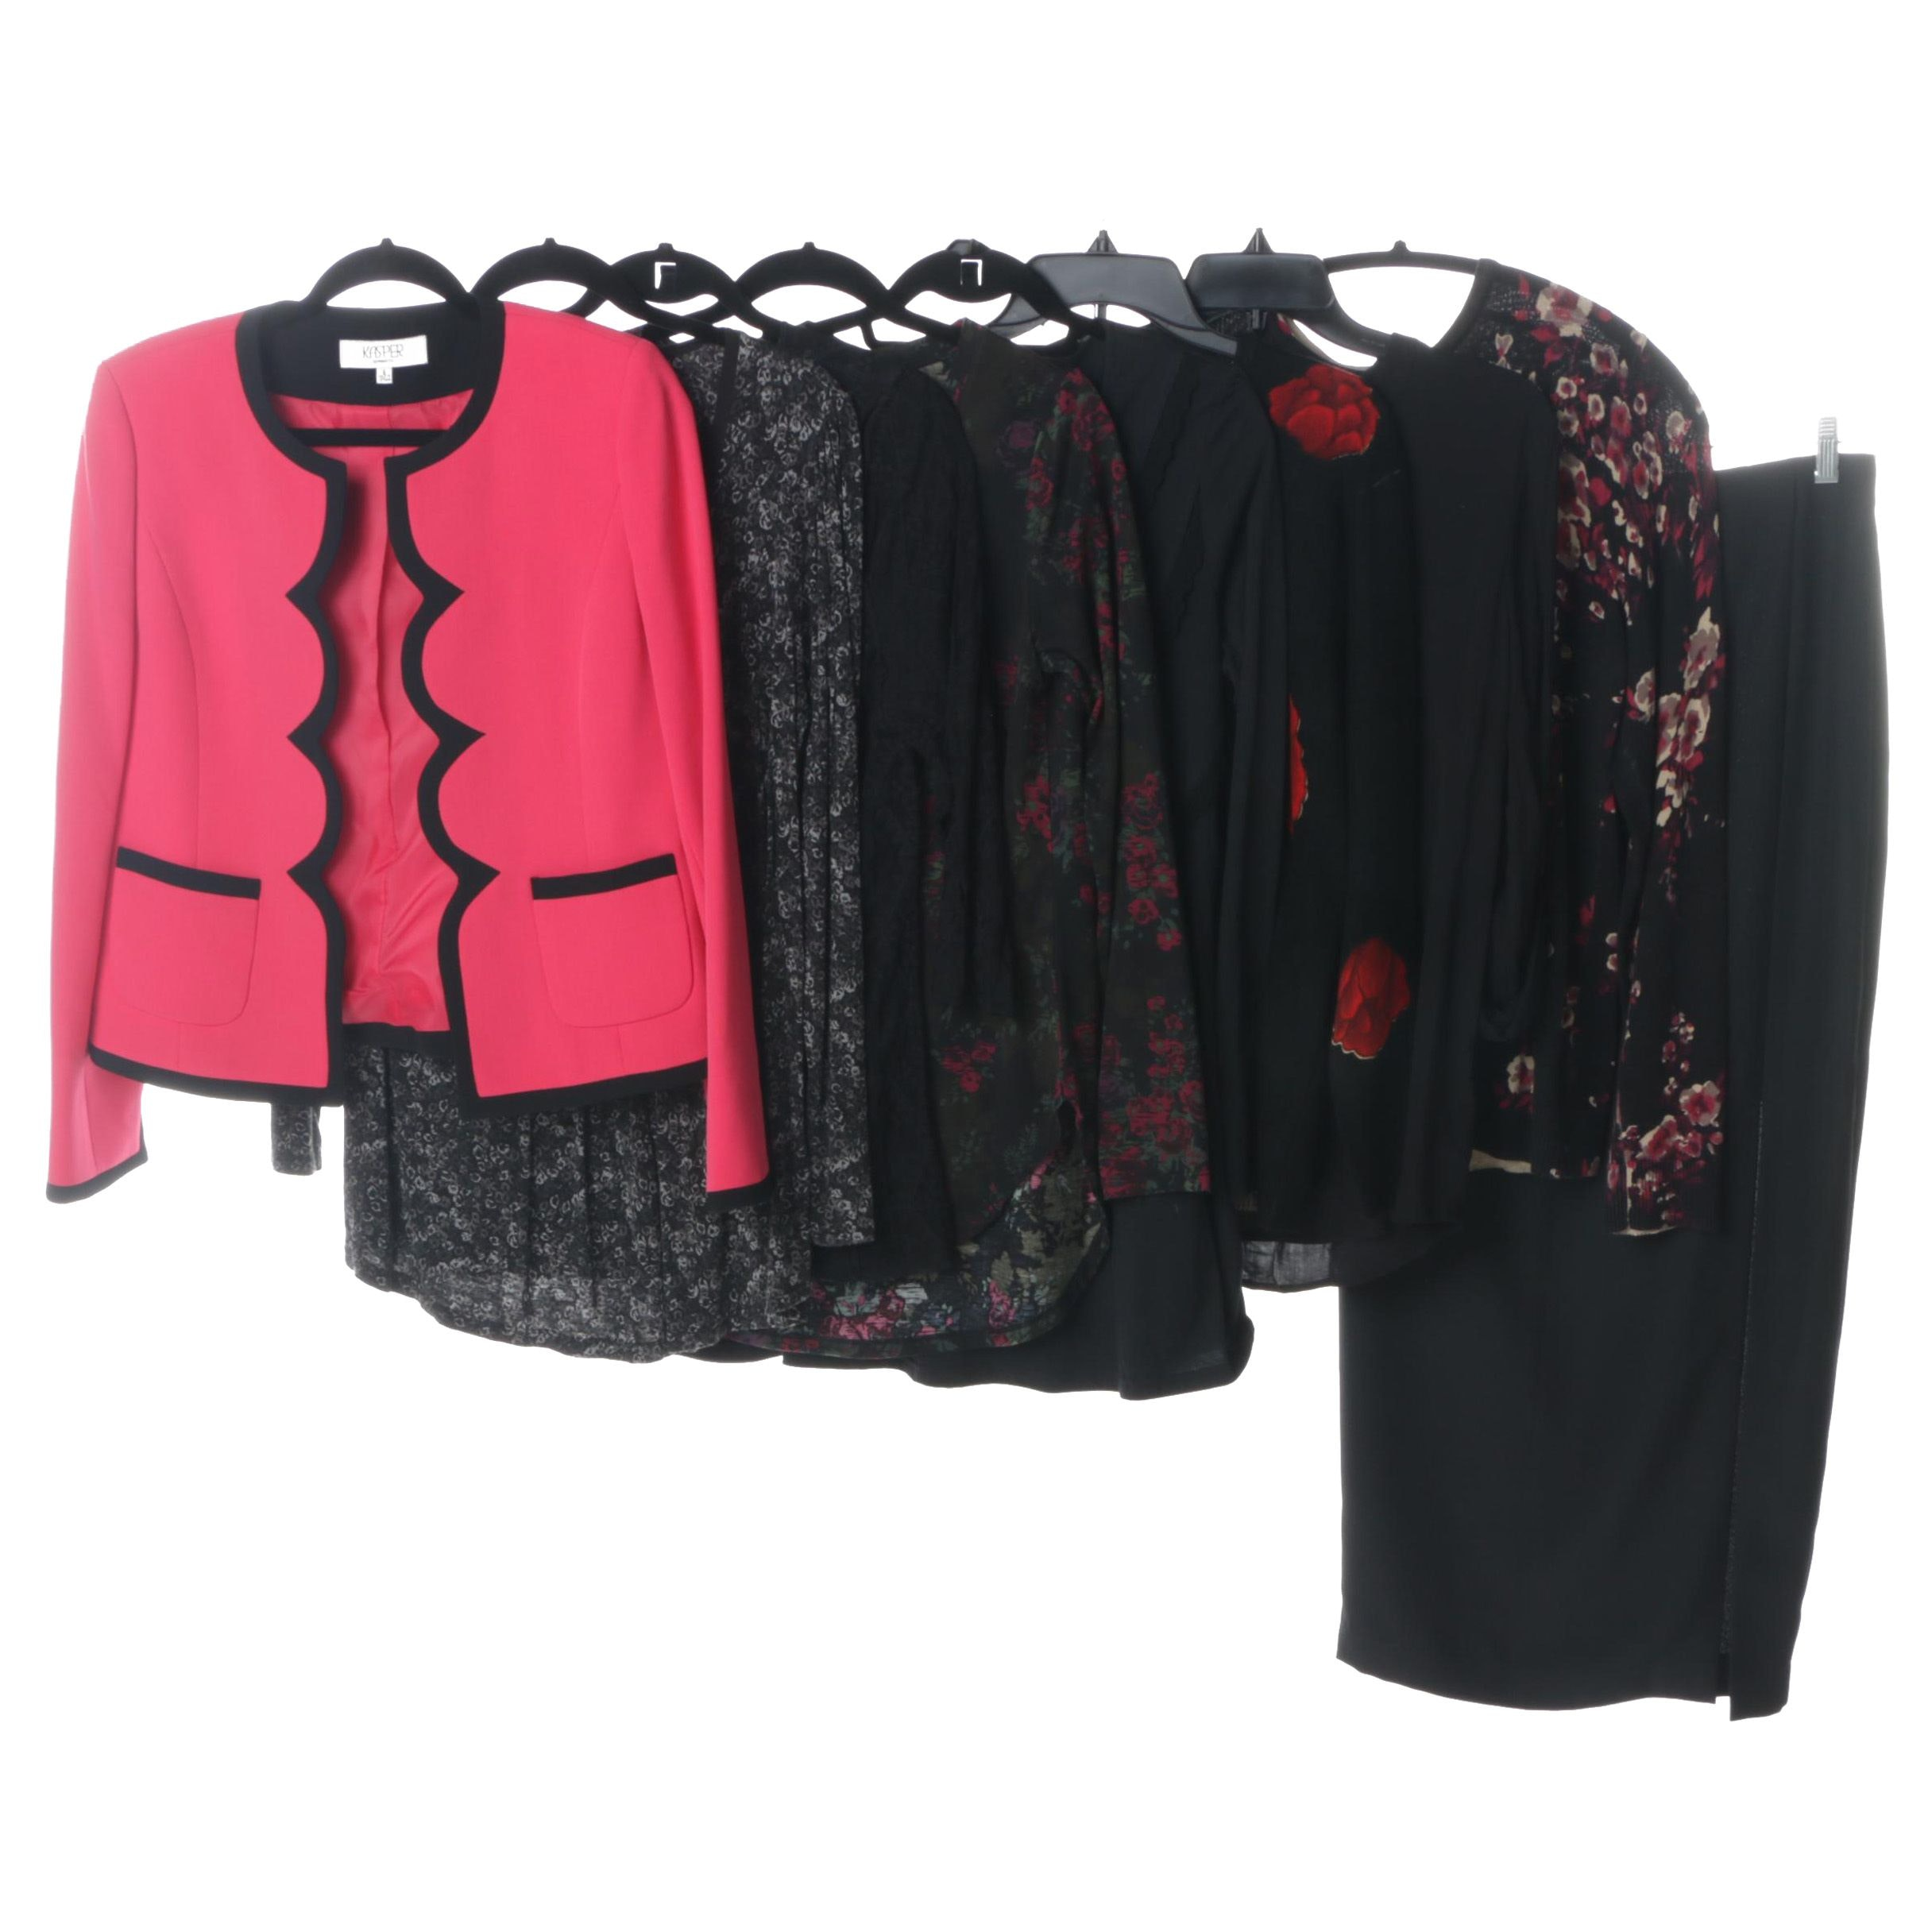 Women's Tops and Skirt Including Liz Claiborne and Ellen Tracy